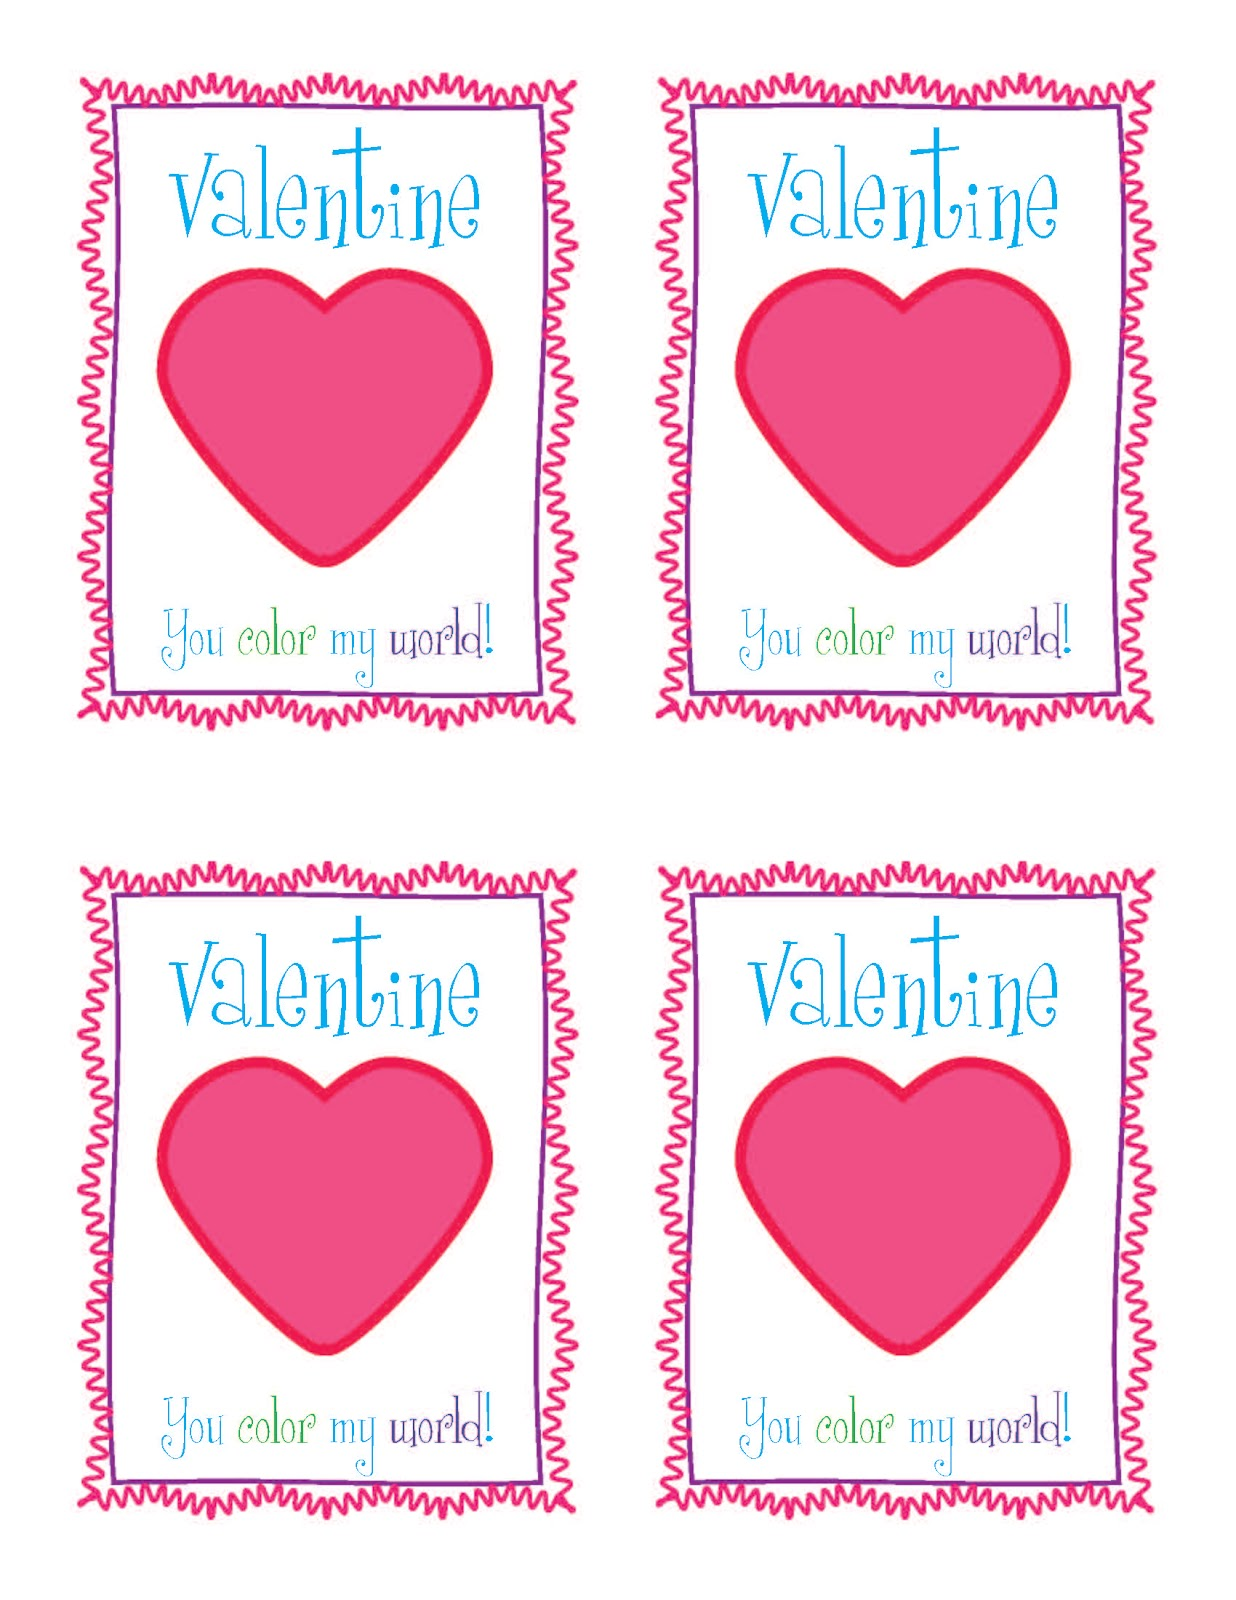 You Color My World Valentines Day Printable By MarleyDesign. Coming Up  Rosemary!Heart Shaped Crayons With Free Valentines